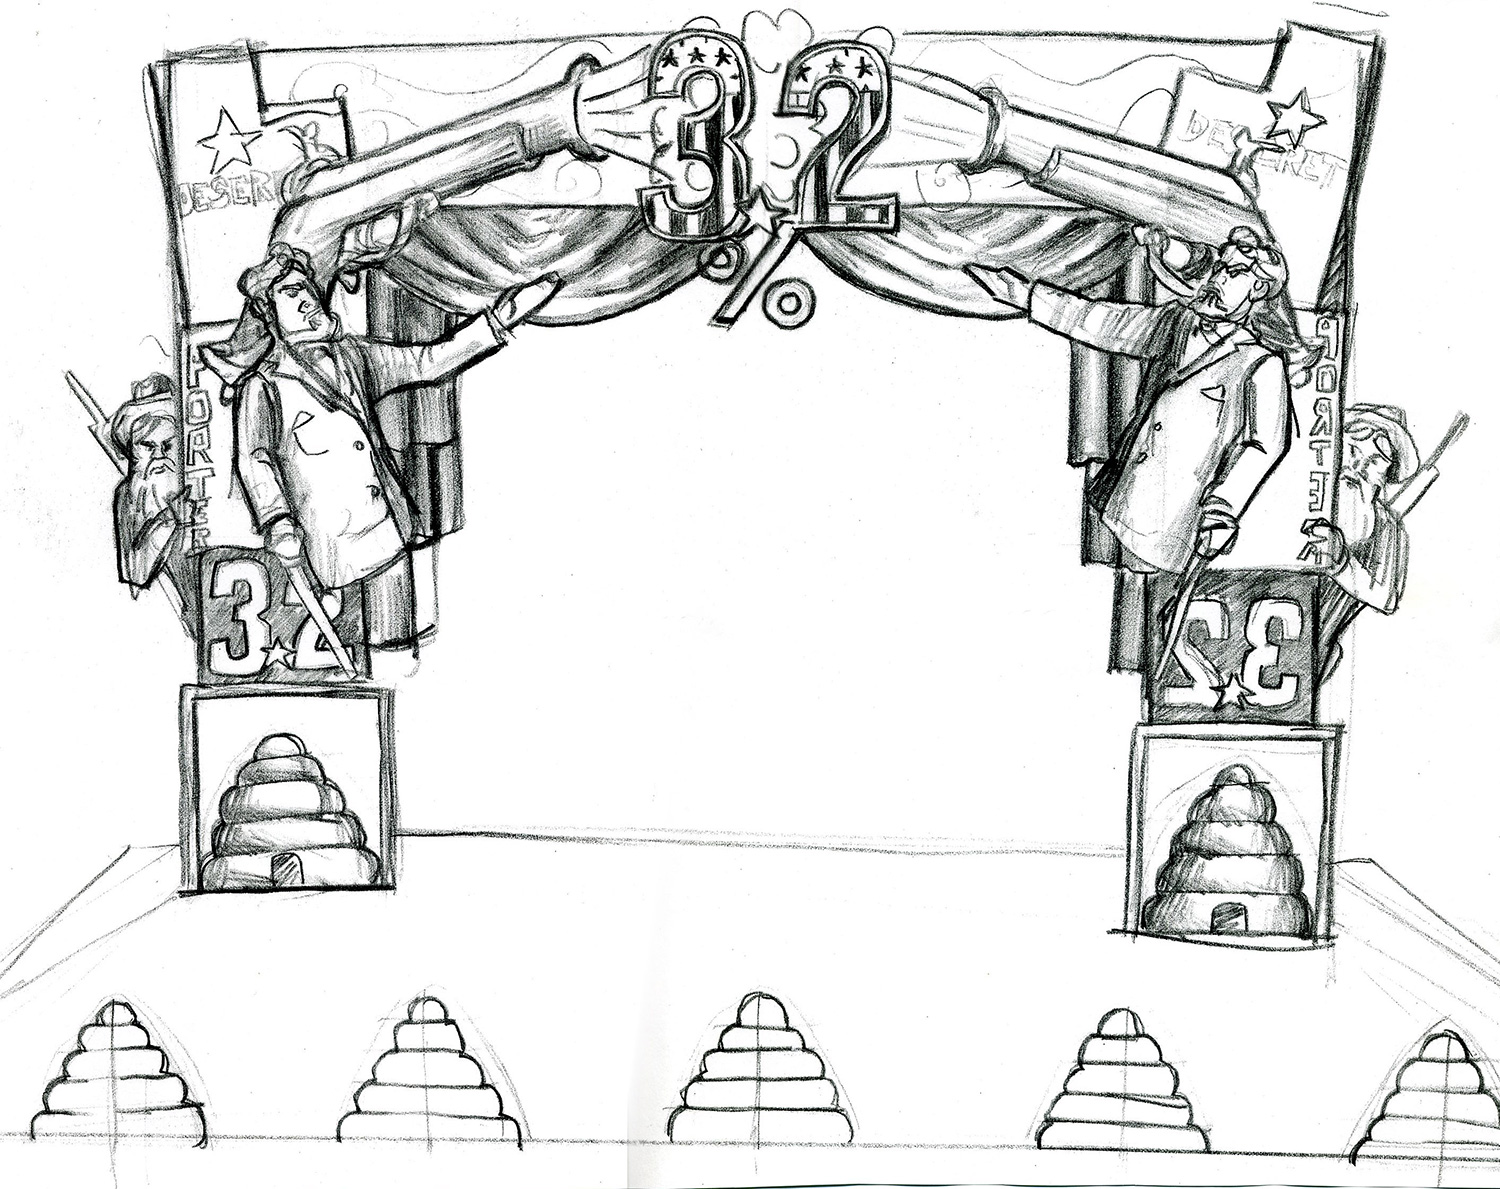 A conceptual drawing for a stage proscenium for a live music television show.